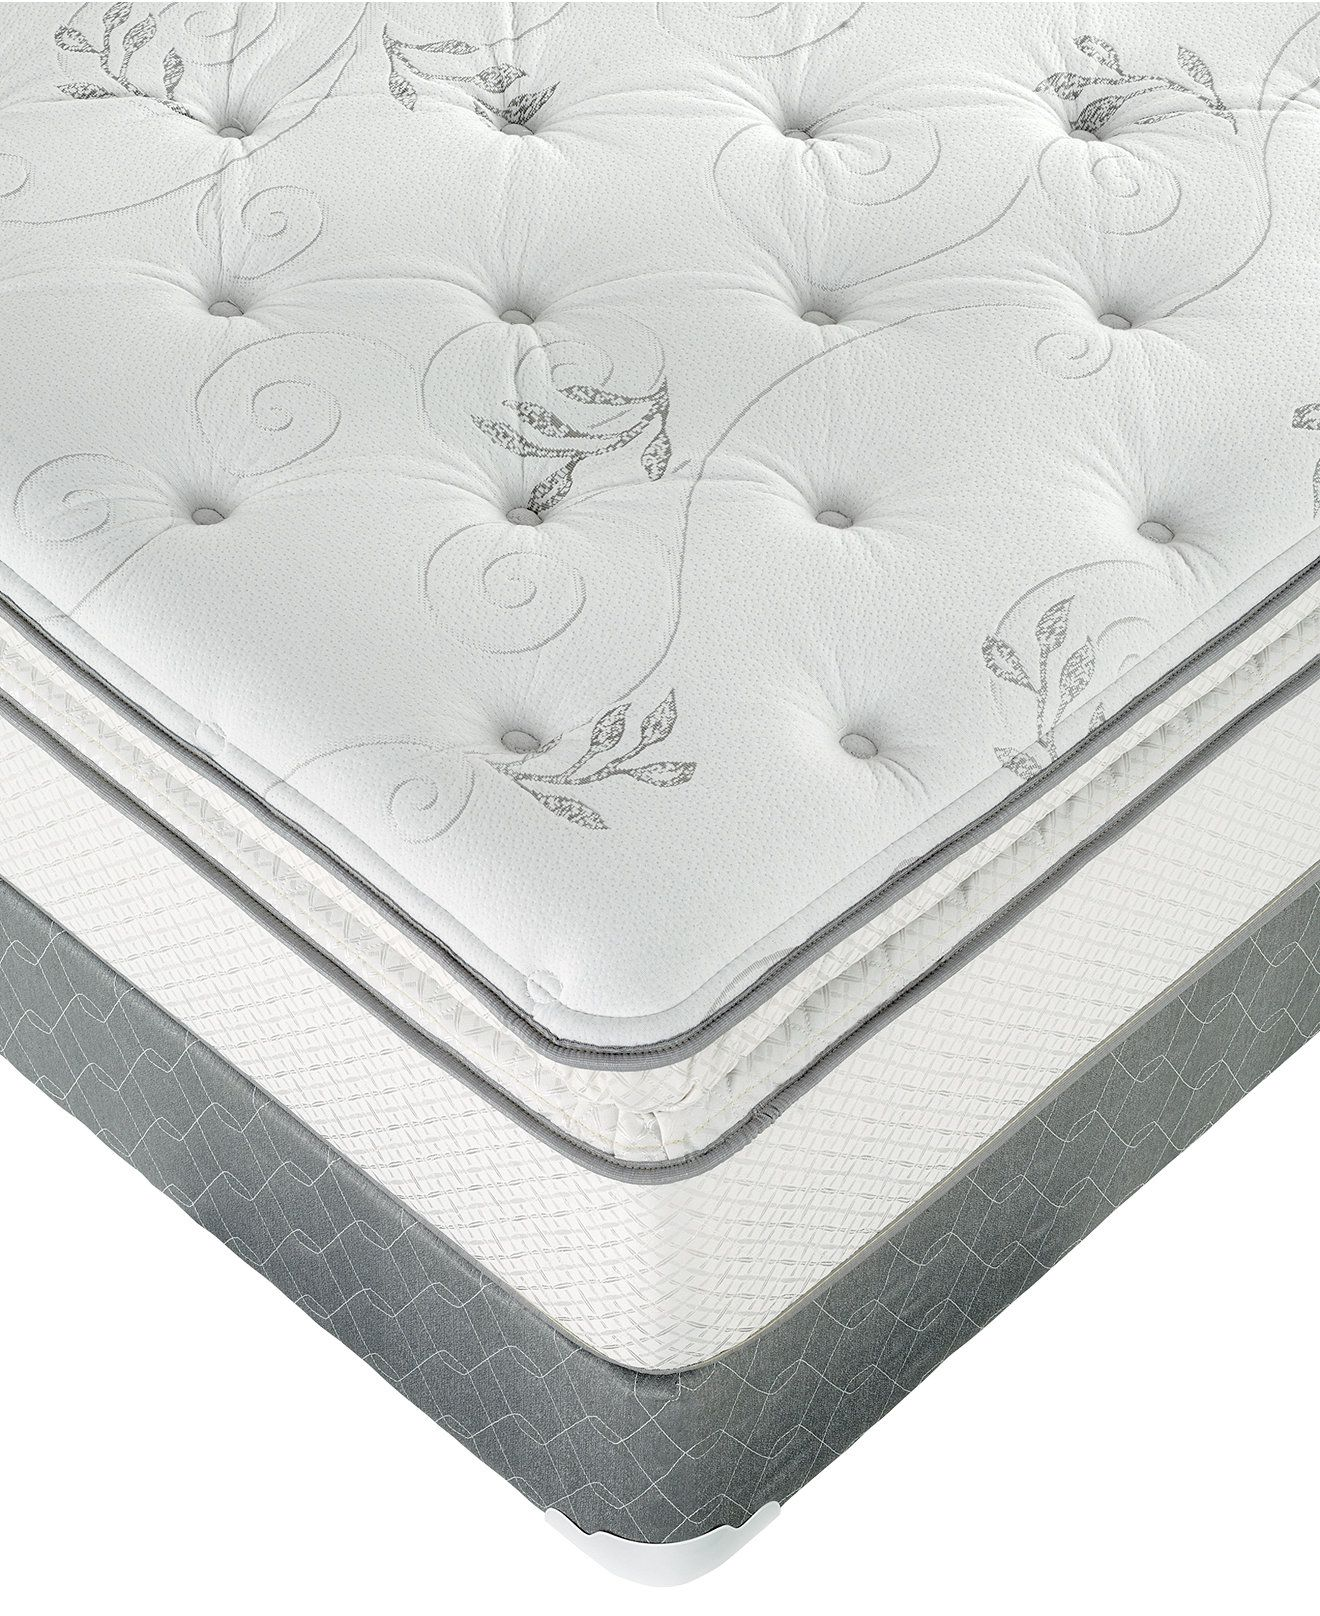 Macybed Full Mattress Grand Plush Super Pillowtop Full Mattresses Mattresses Macy S Cheap Queen Mattress Mattress Queen Mattress Set